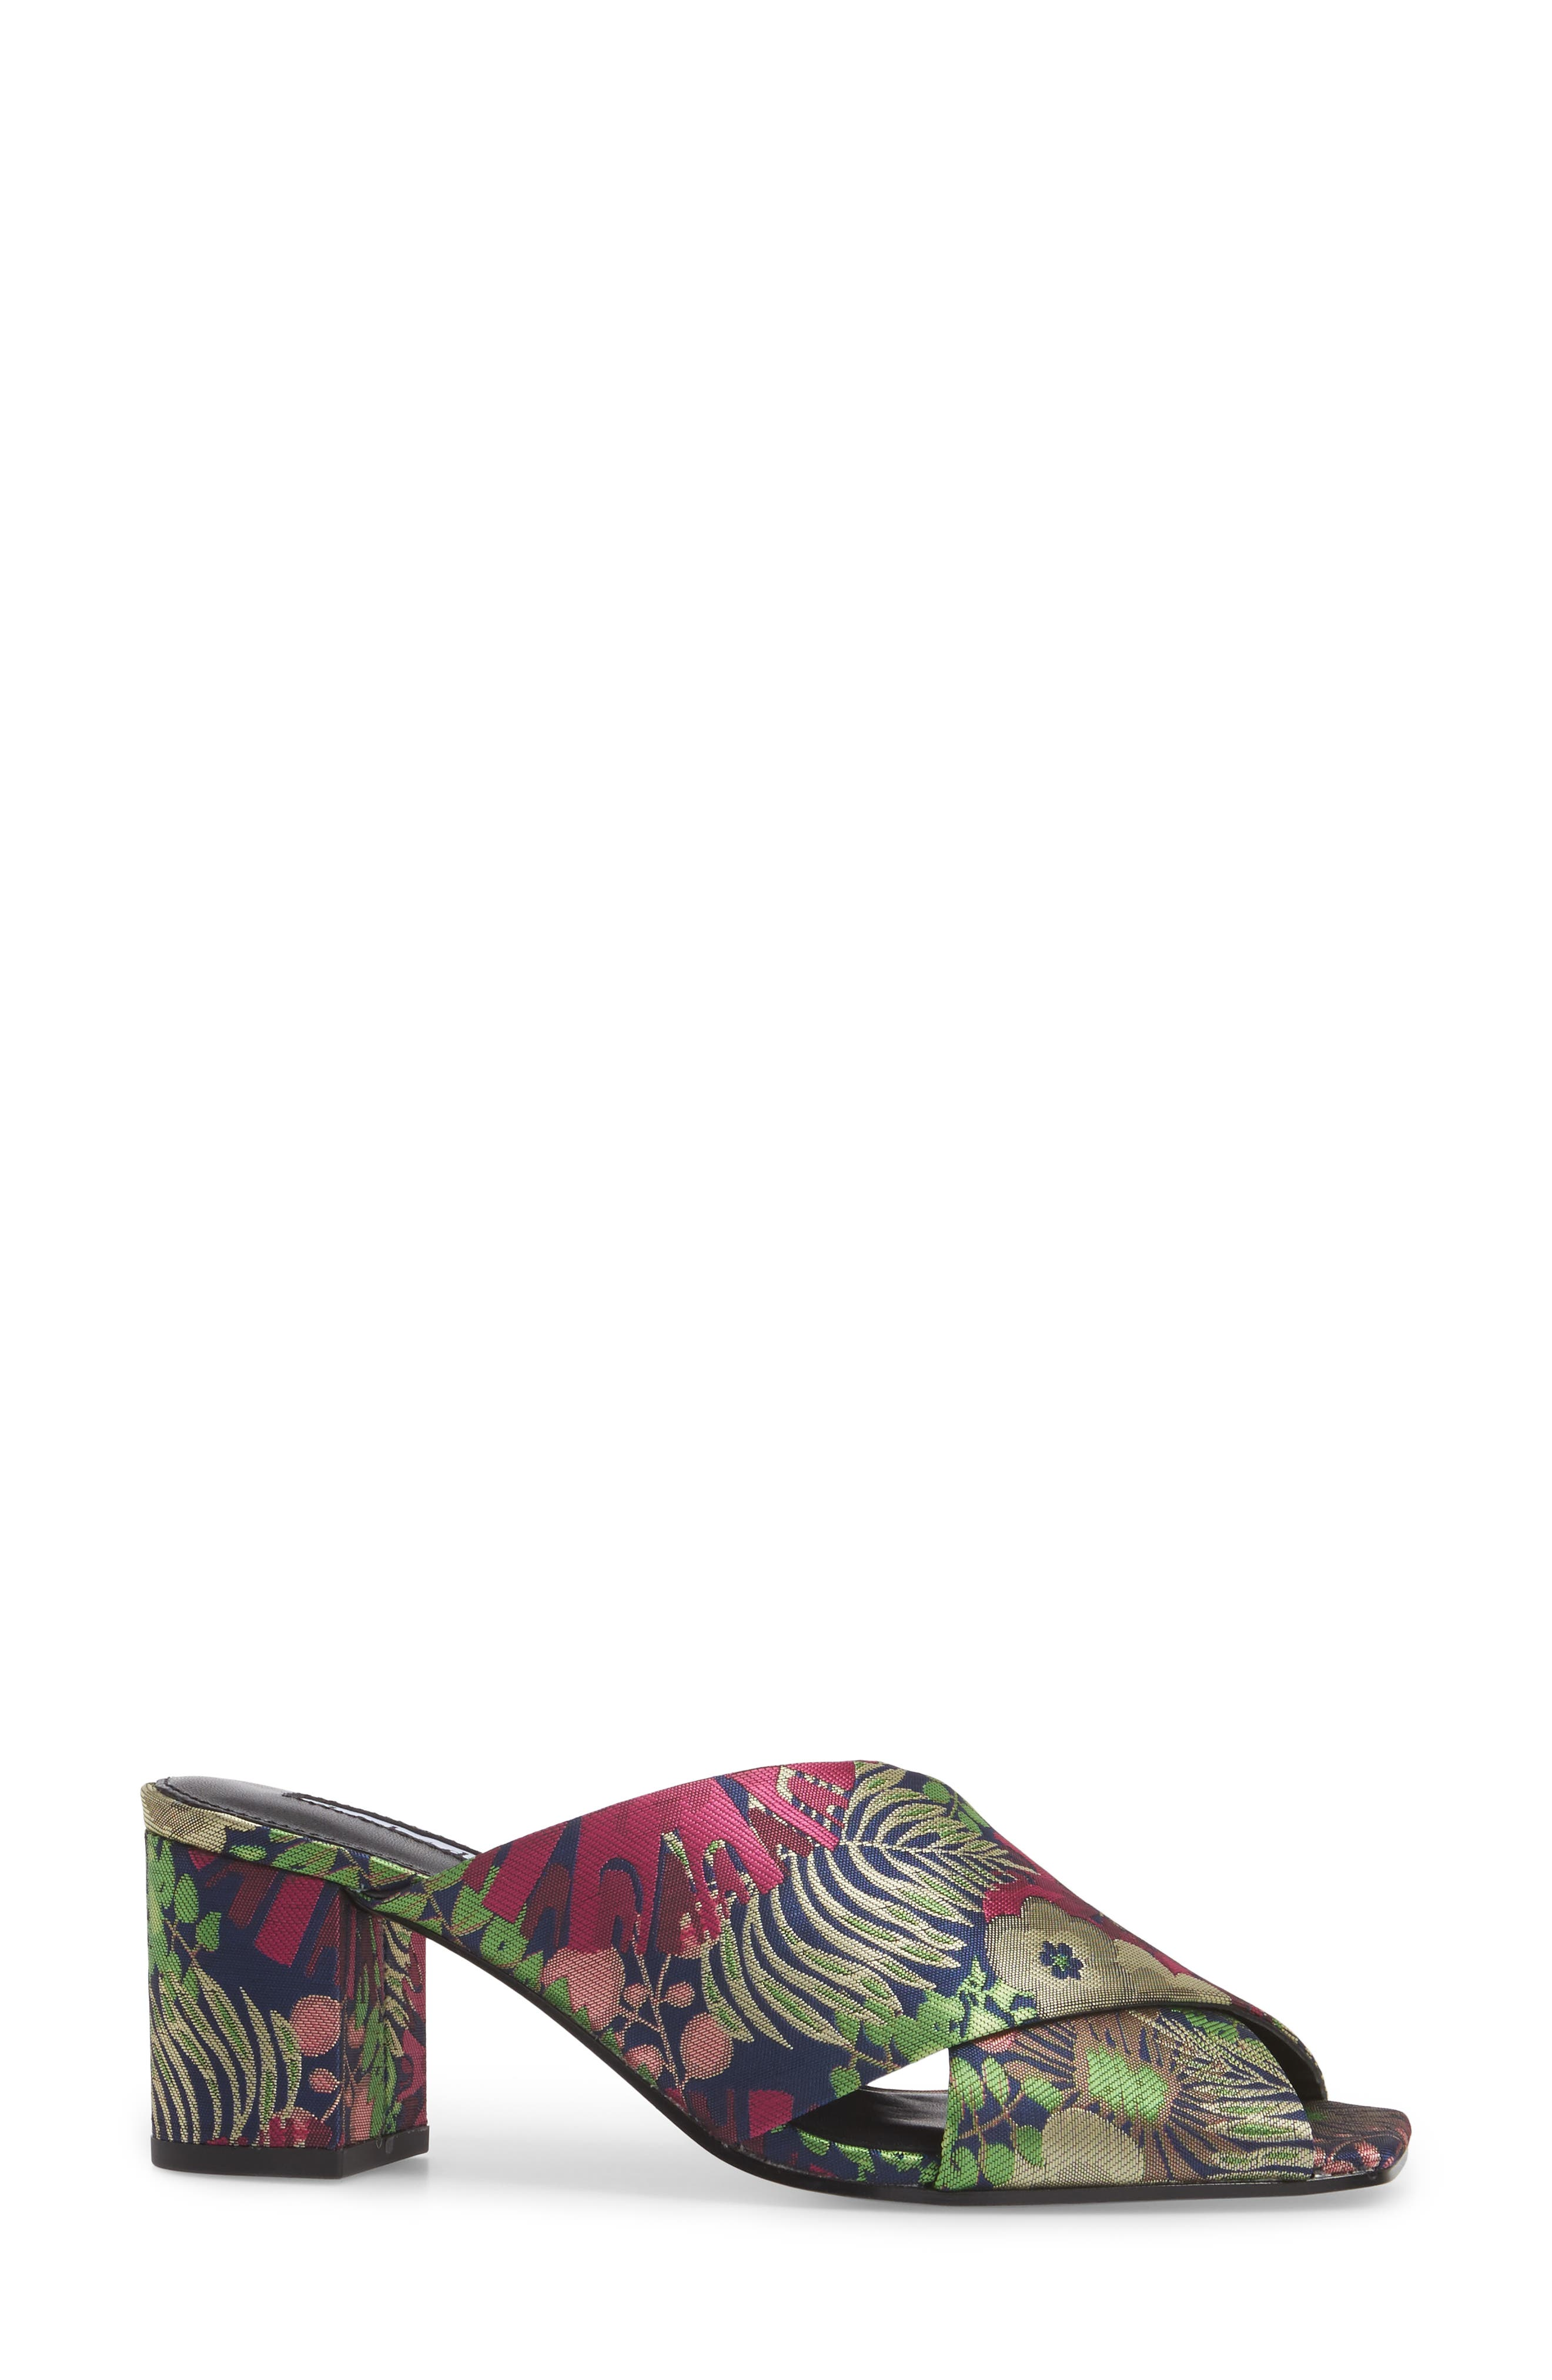 Crissaly Slide Sandal,                             Alternate thumbnail 3, color,                             Green Multi Floral Fabric